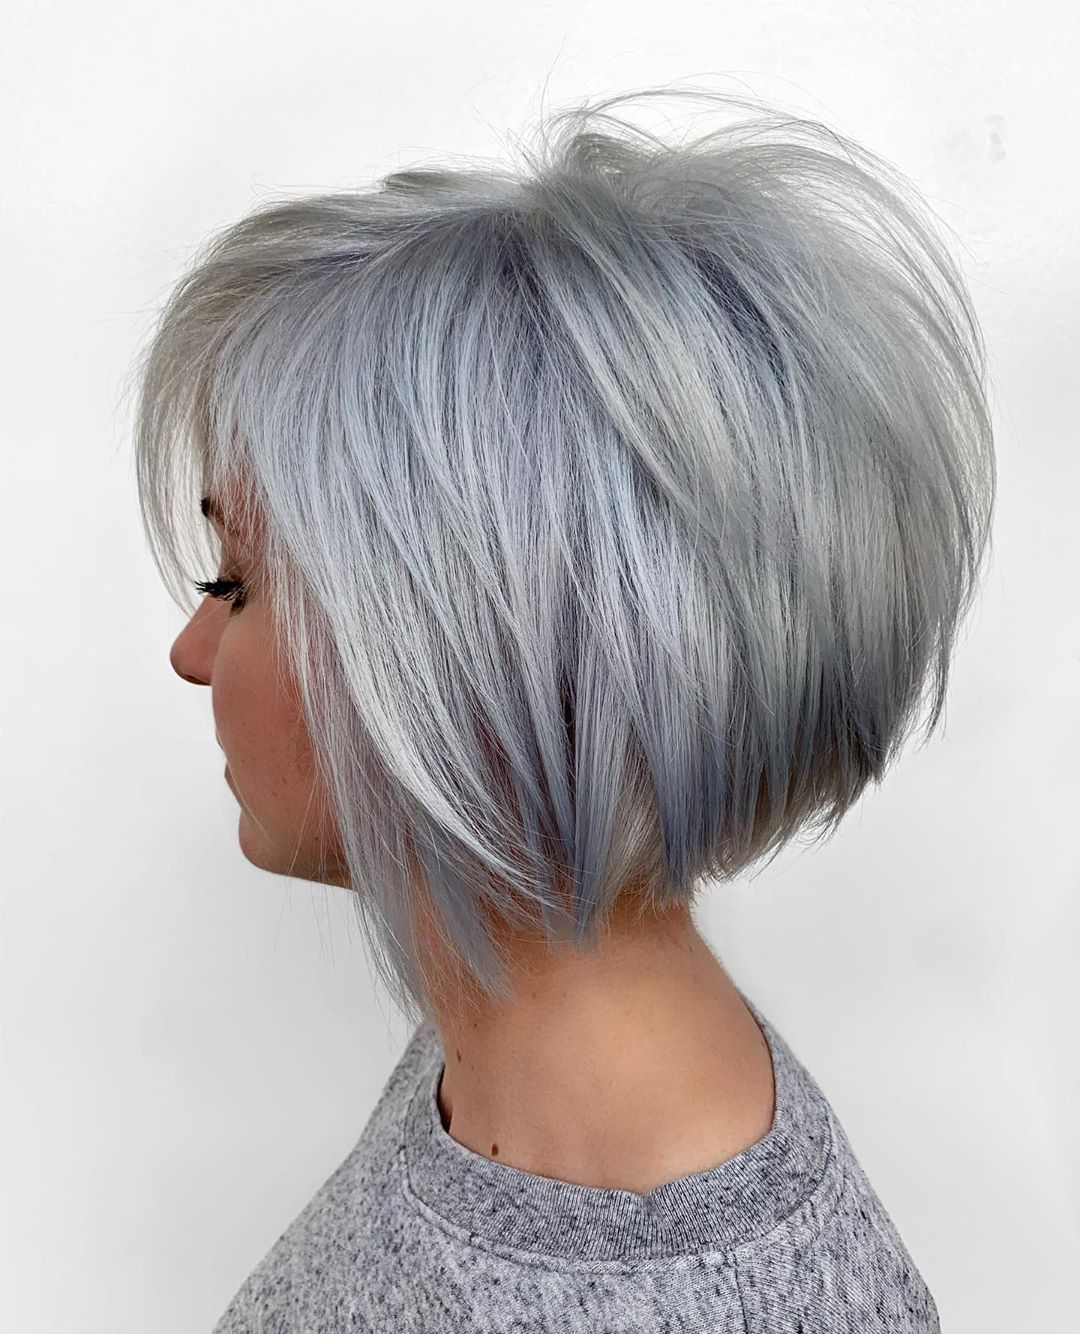 10 Short Bob Hair Color Ideas - Women Short Hair S